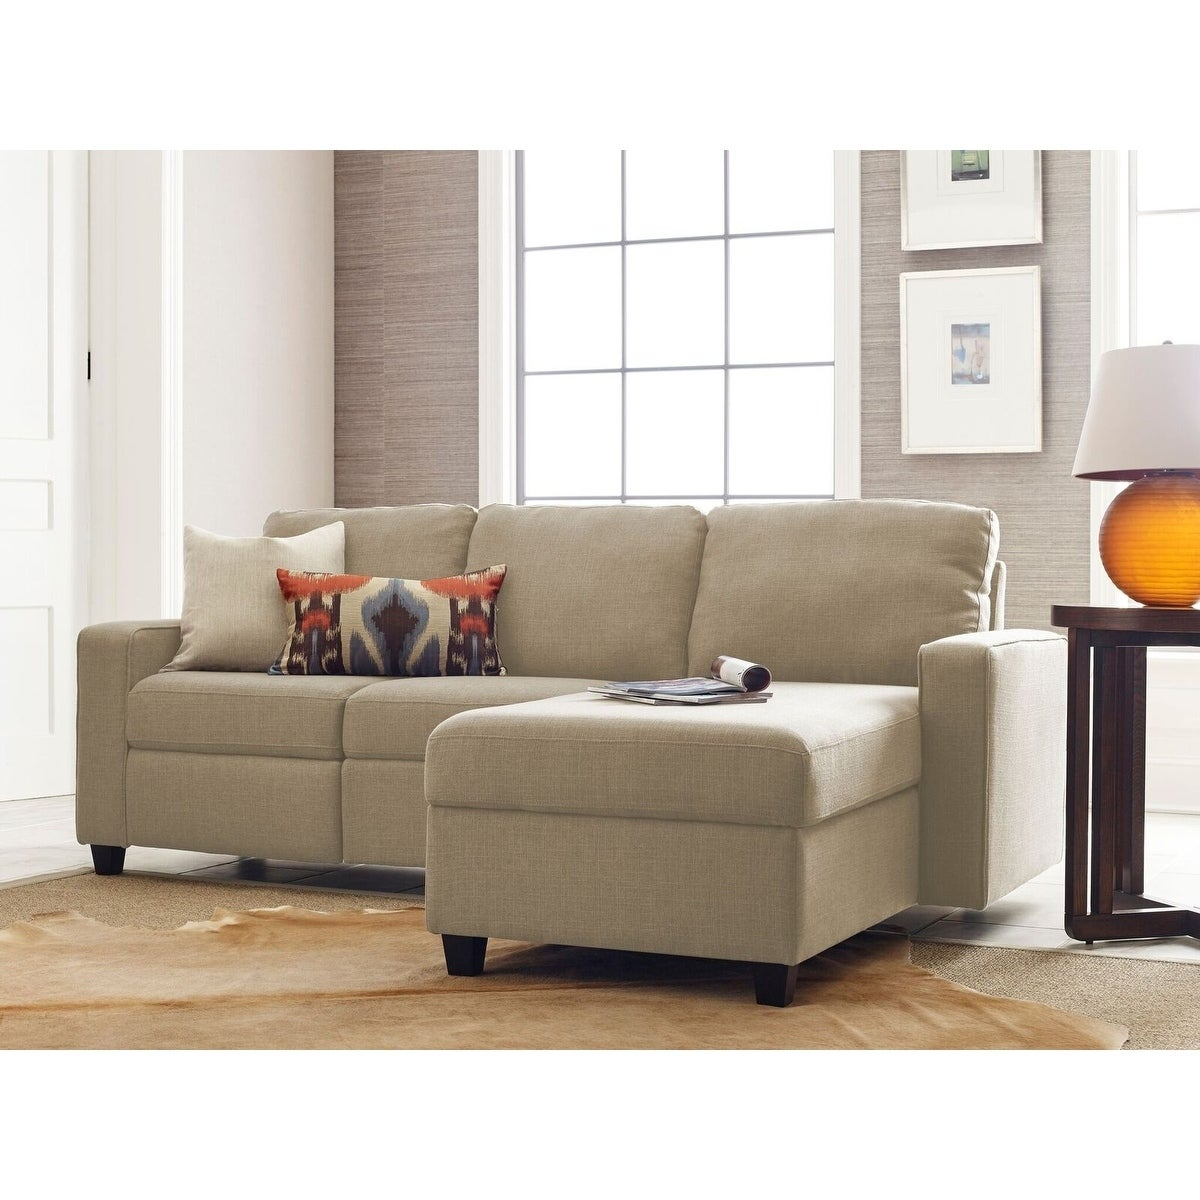 Shop Serta Palisades Reclining Sectional With Right Storage Chaise   Free  Shipping Today   Overstock.com   23005089